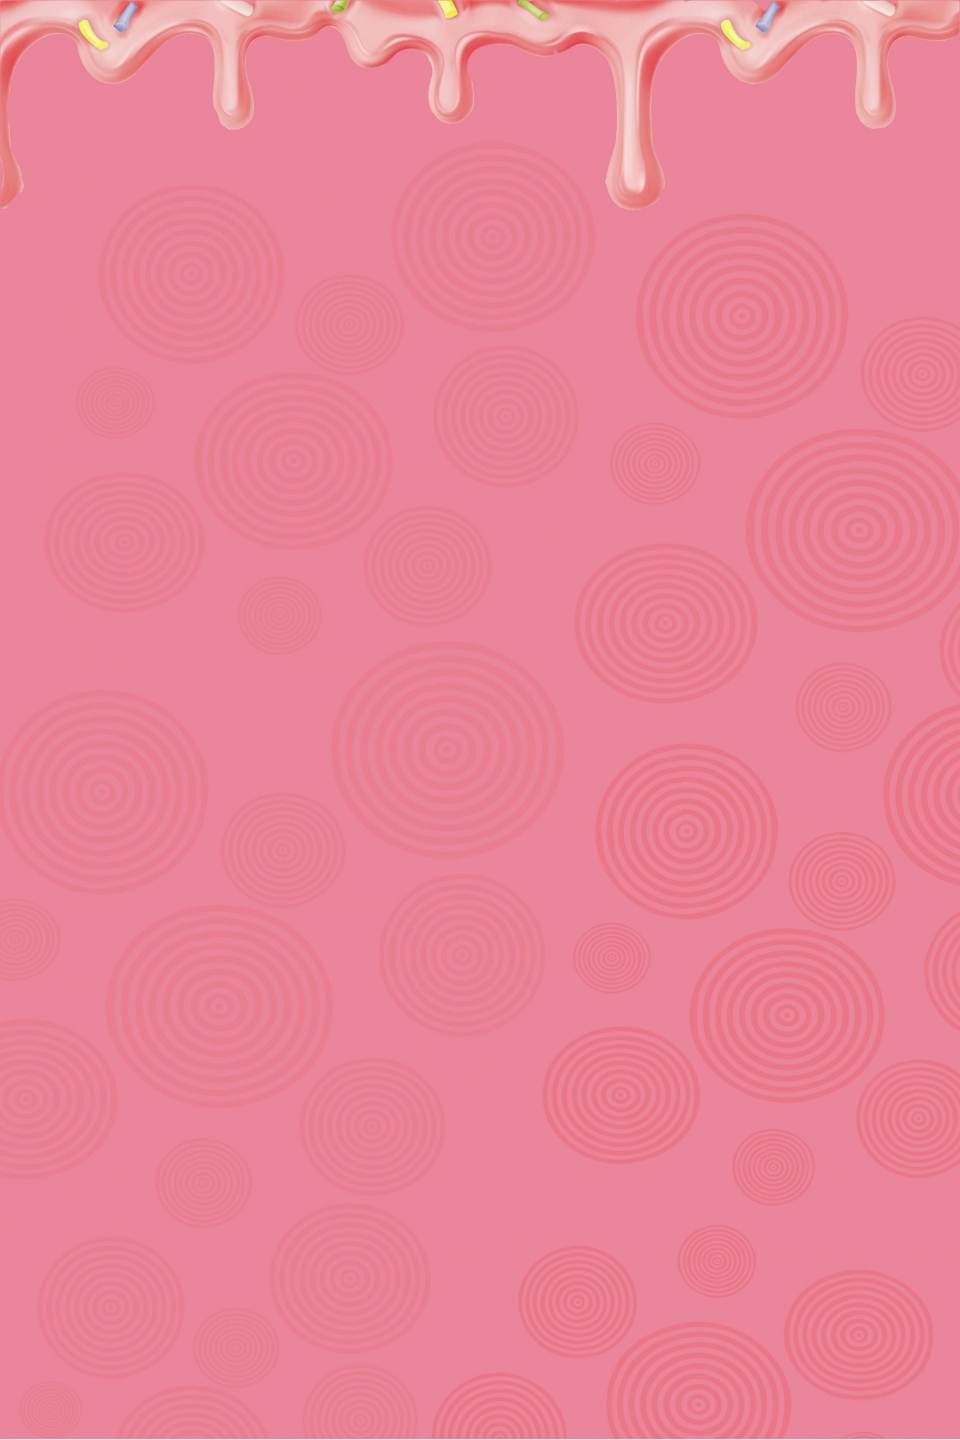 960x1440 - Background Pink 35